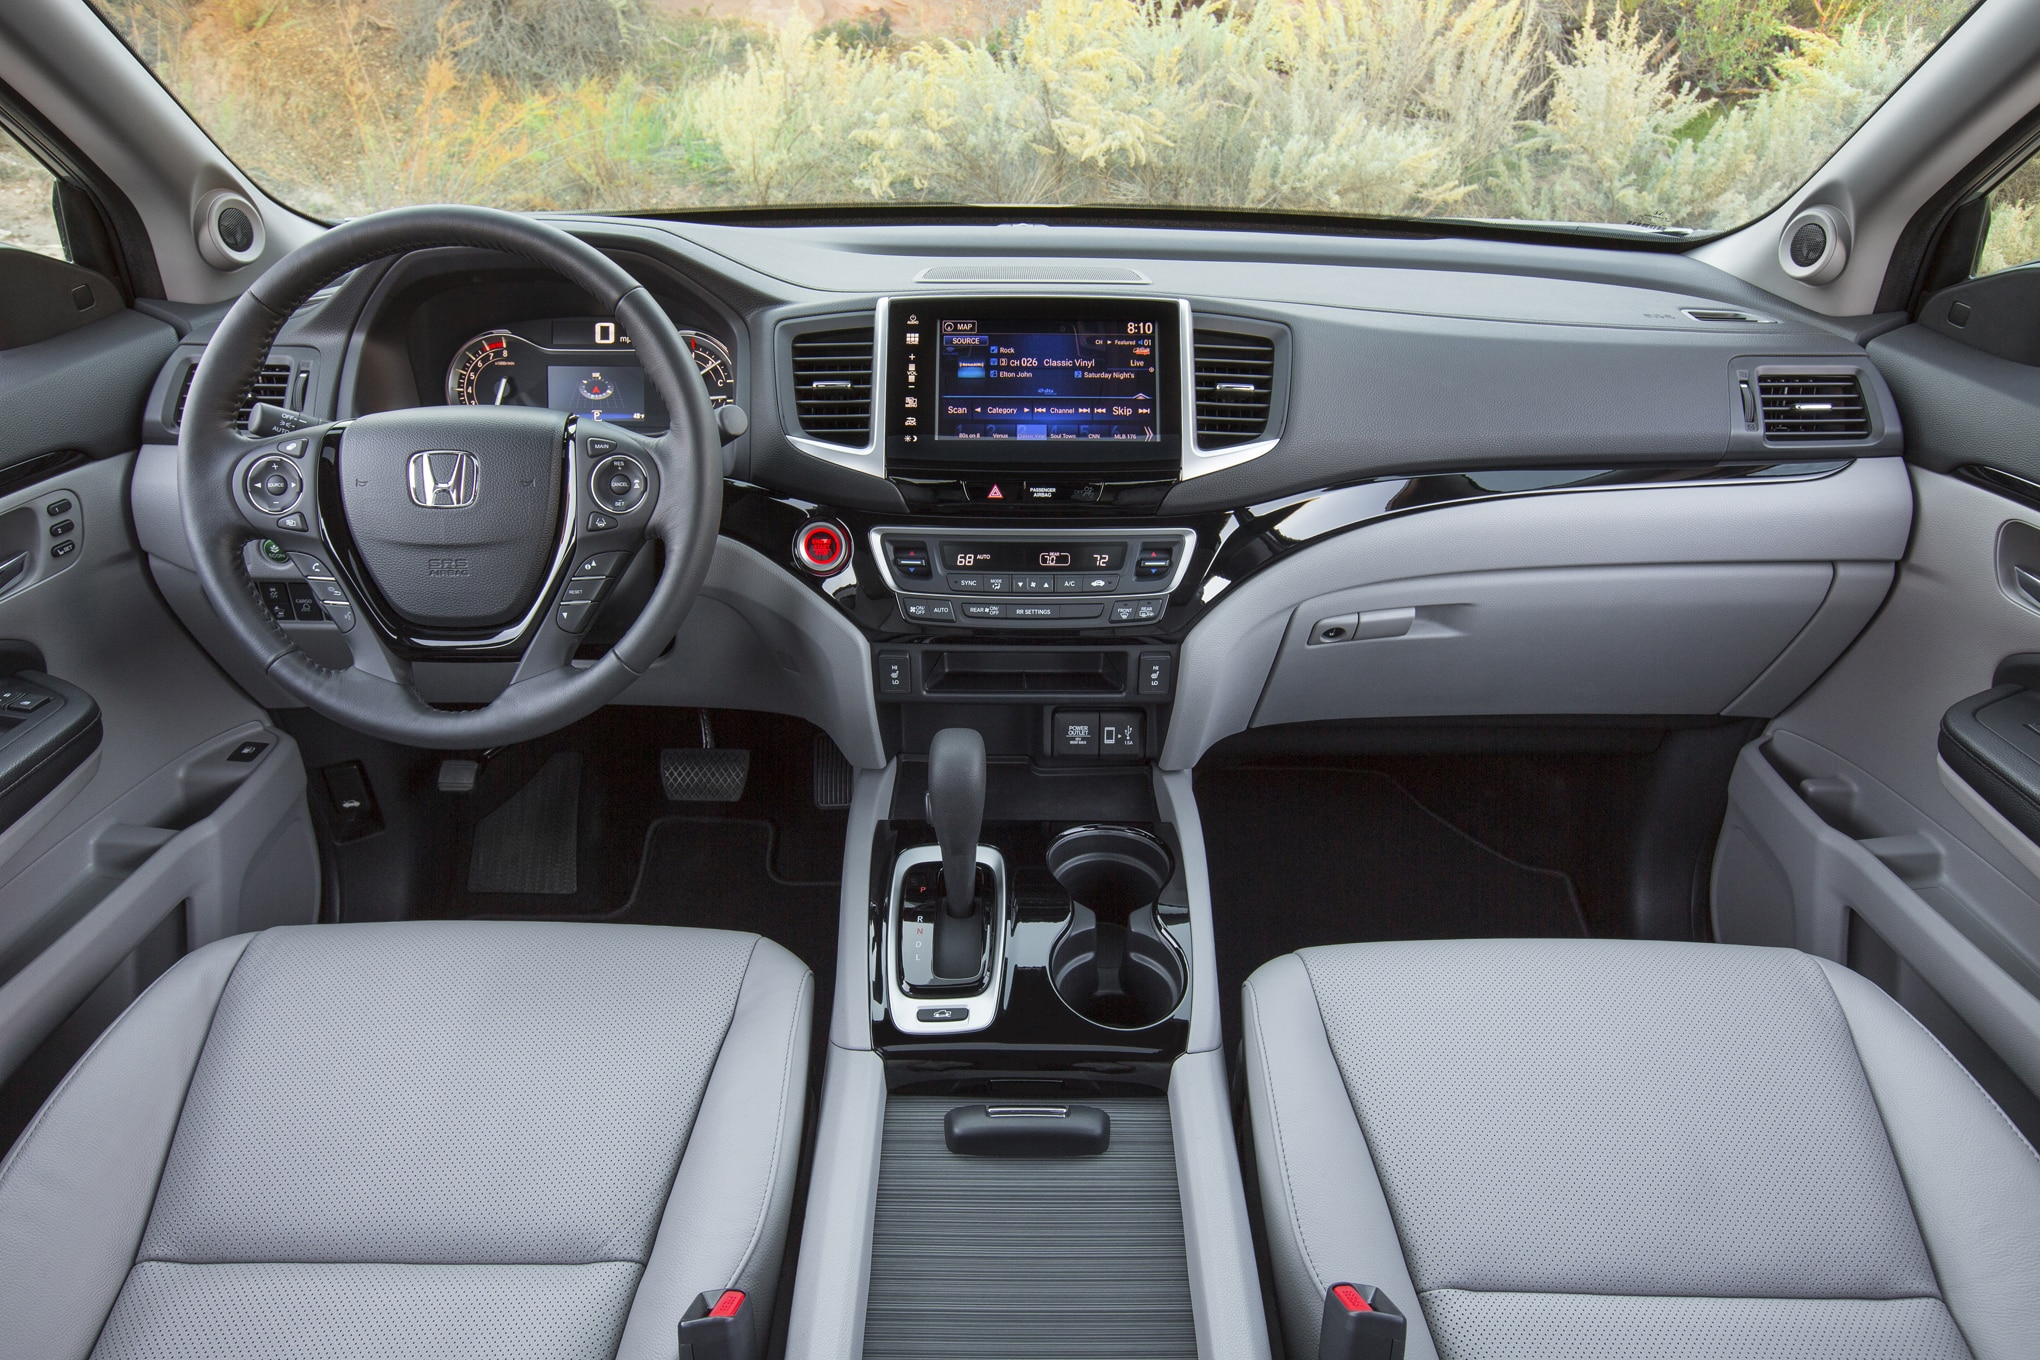 Things to Know about the 2017 Honda Ridgeline